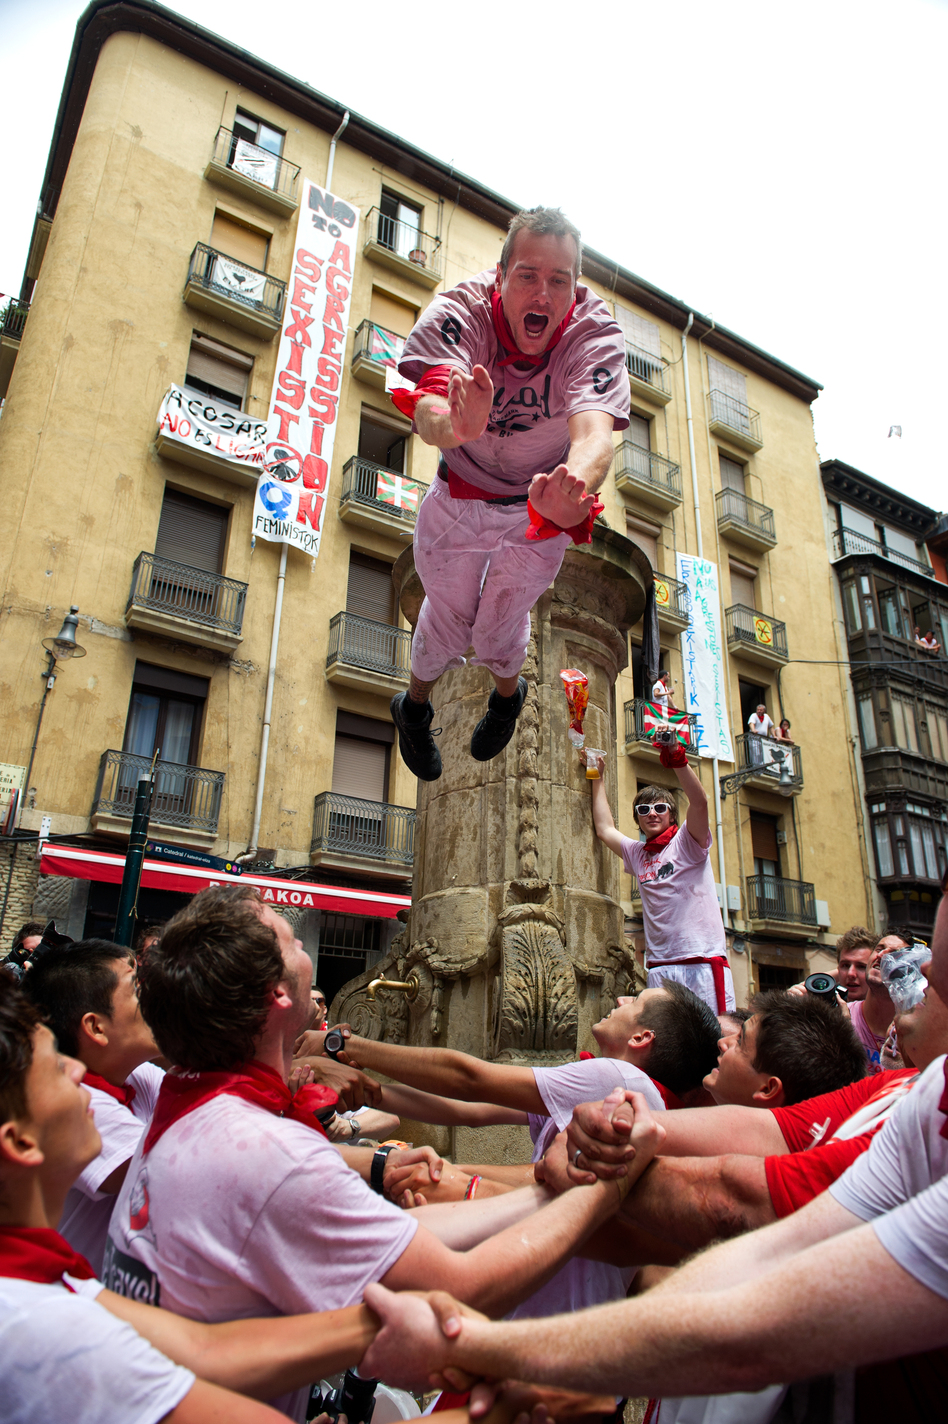 Summertime is Spain's festival season. Villages across the country will honor their patron saints with more wild parties. But come September, a hangover just might be waiting. (Getty Images)